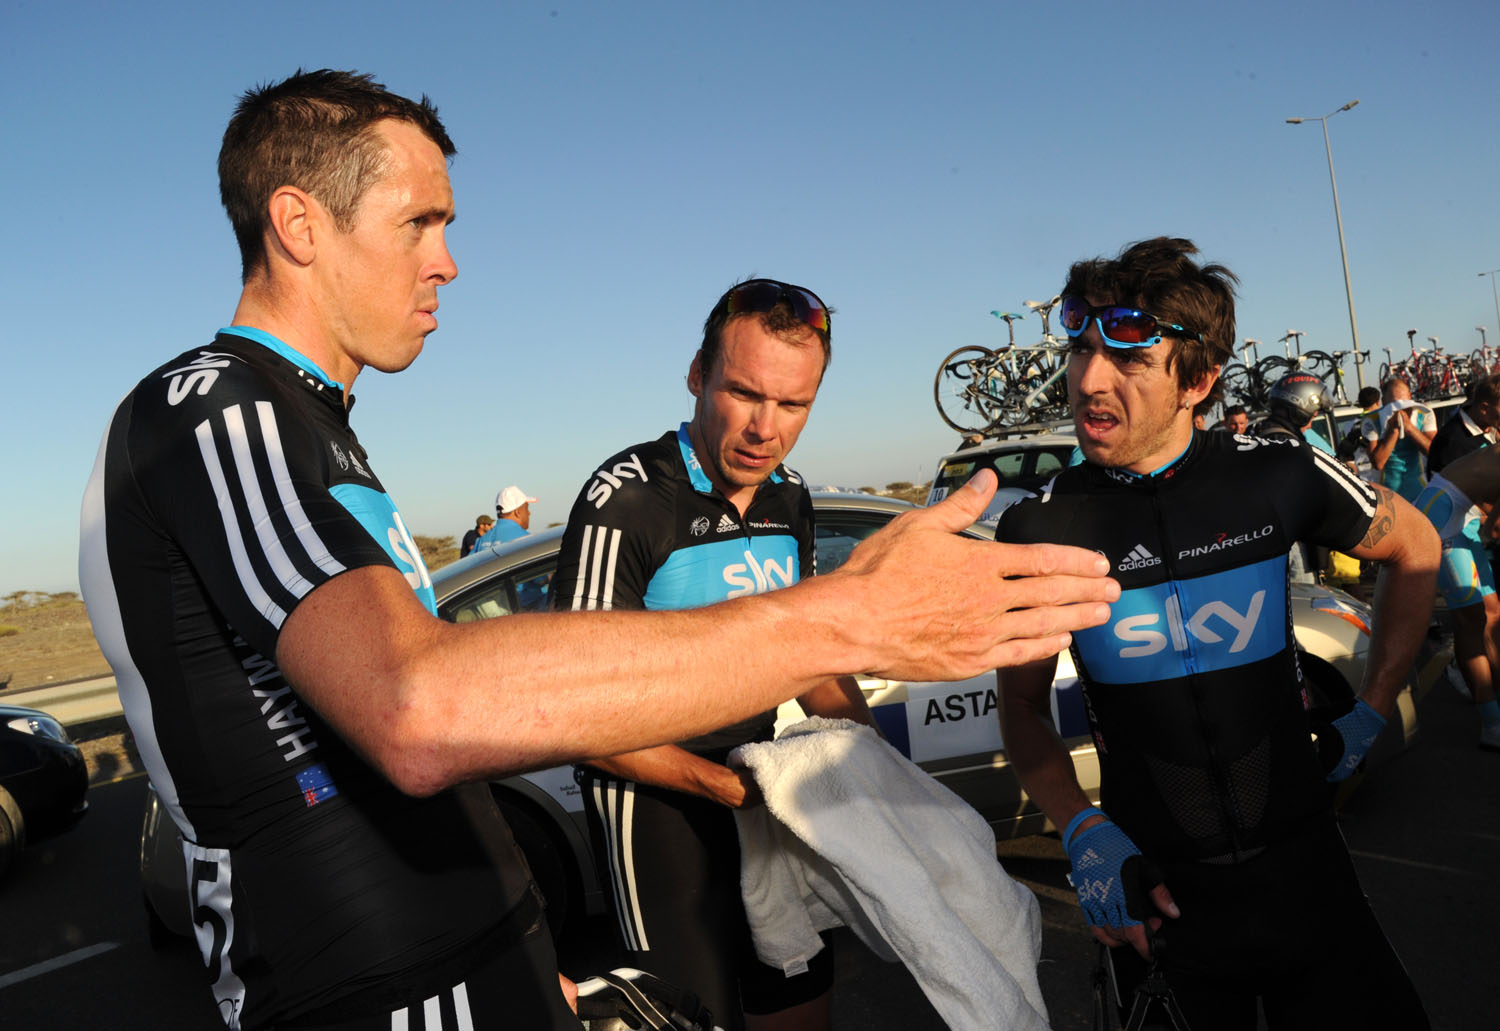 Mat Hayman, Russell Downing and Jeremy Hunt, Tour of Oman 2011, stage one